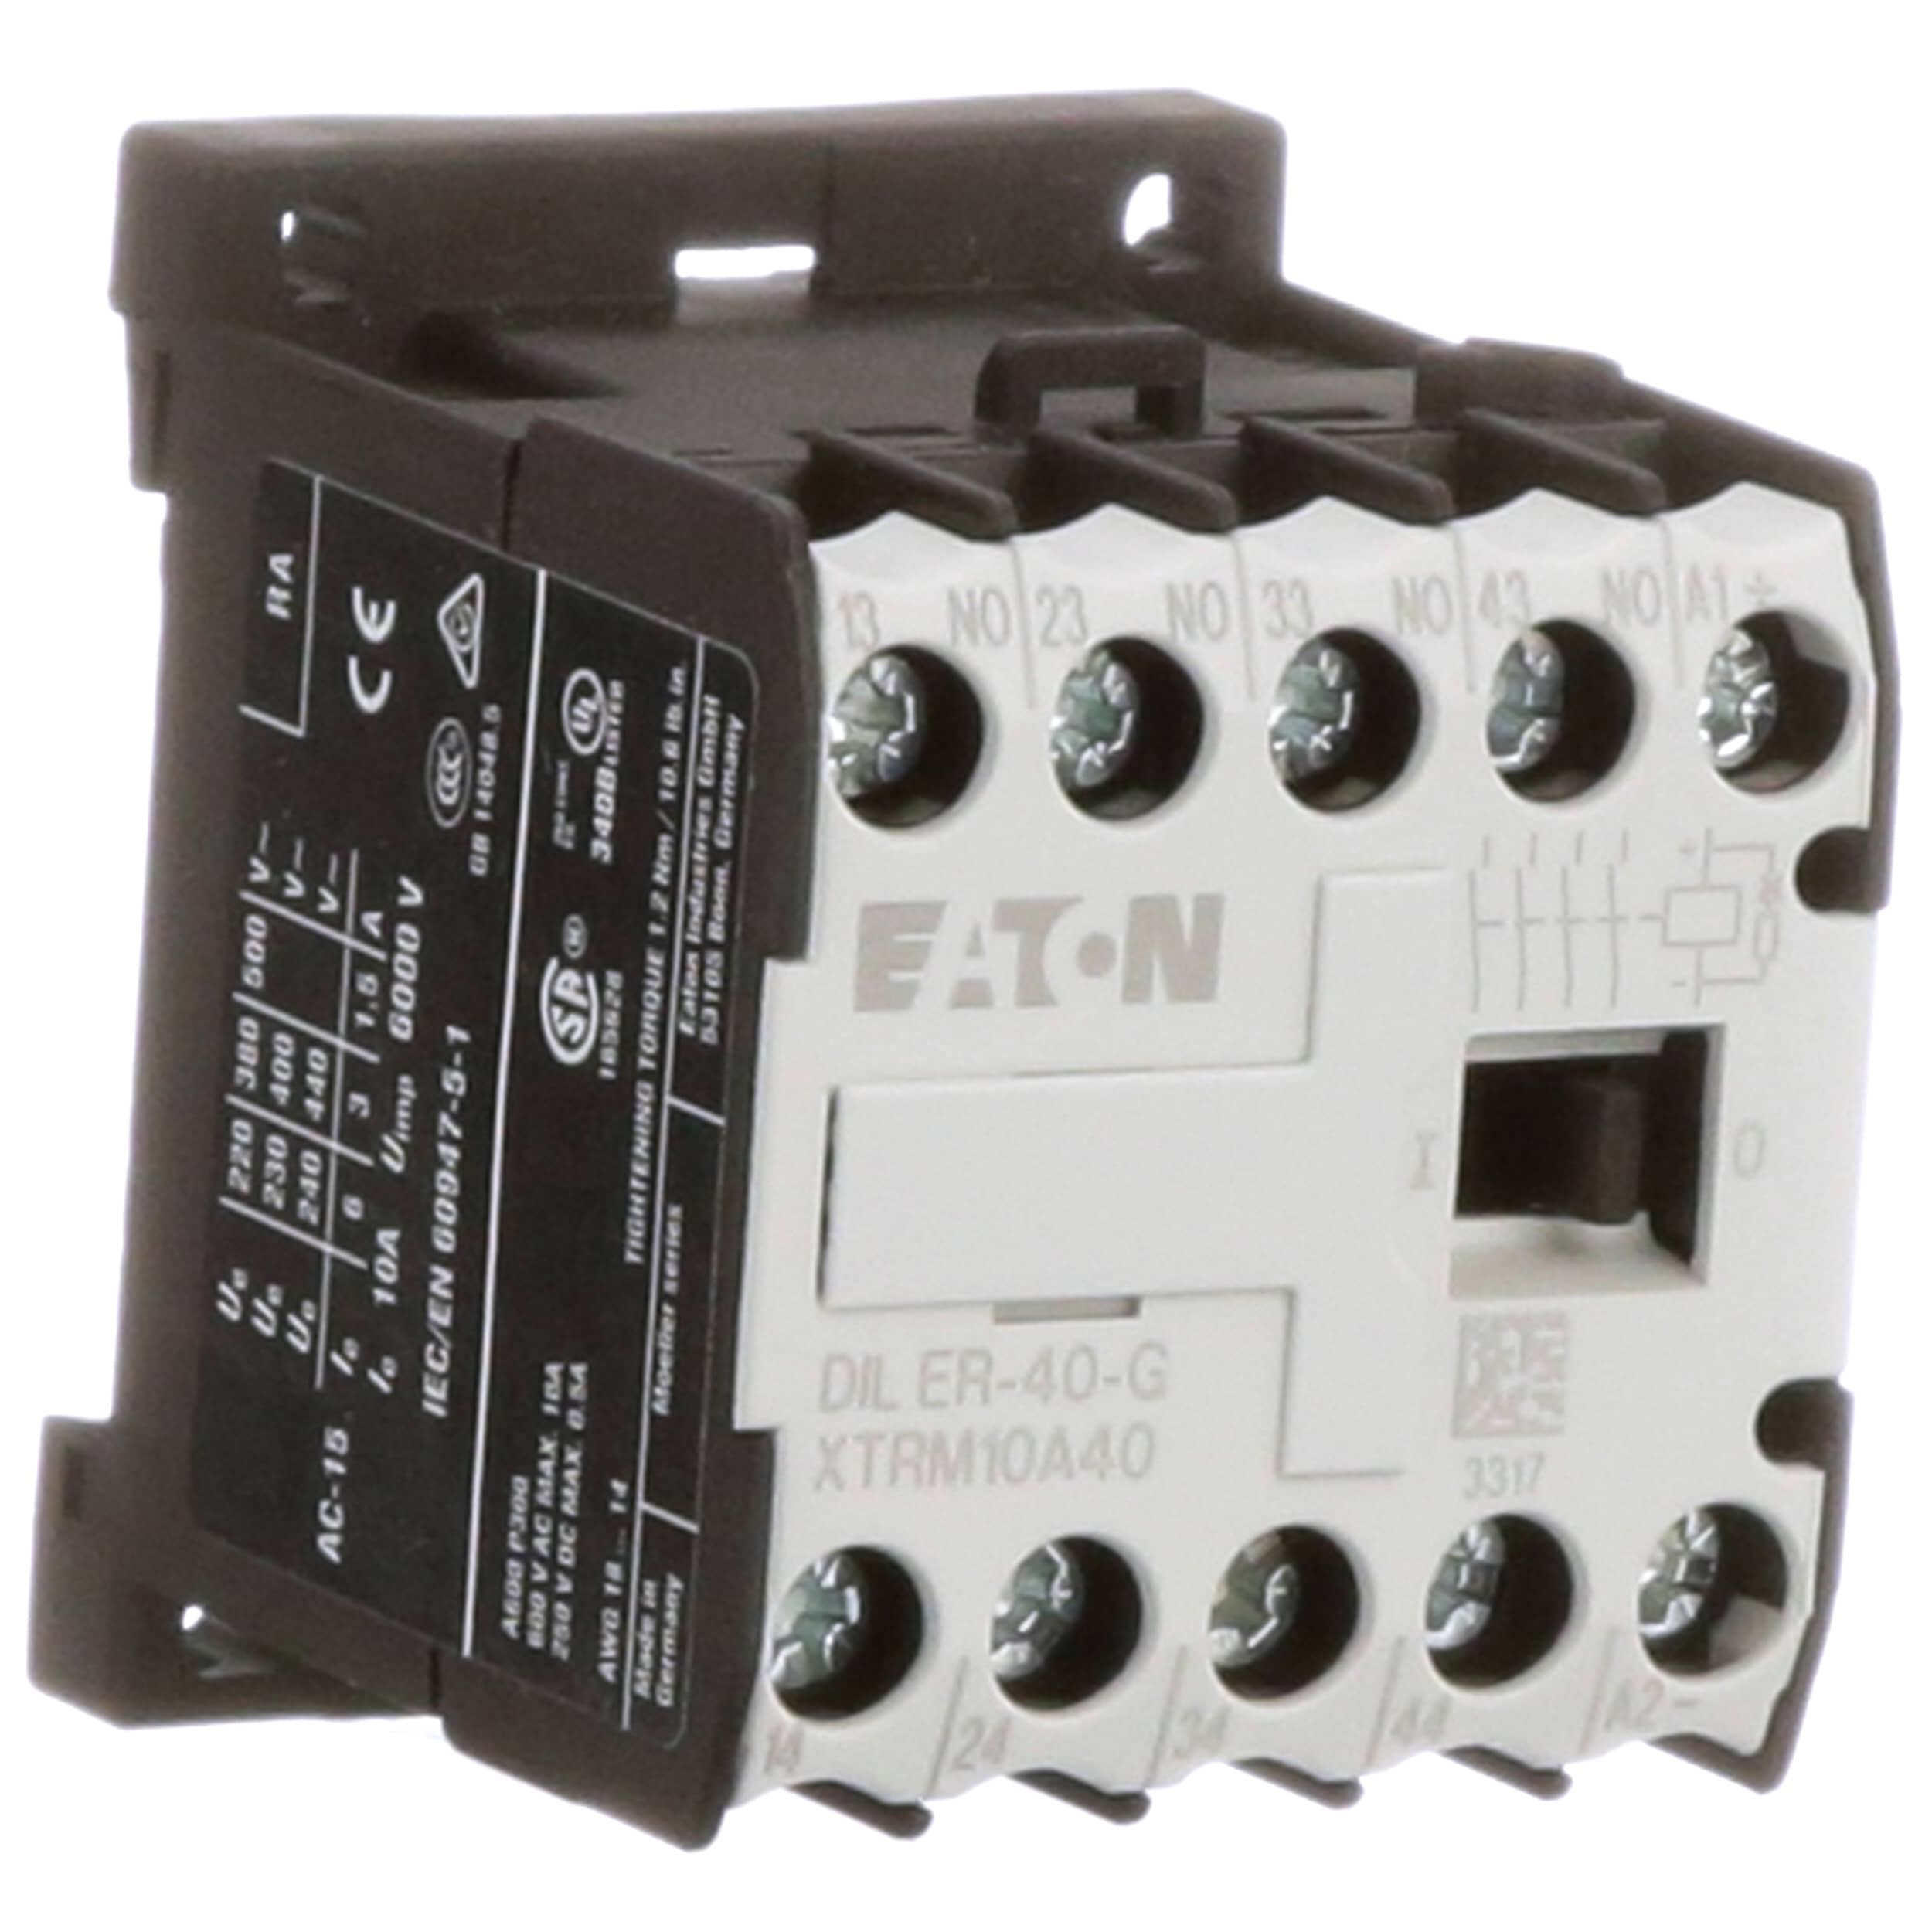 Xtrm10a40td Spstno 40 Amp 100 Vdc Typical Condition Eaton Cutler Hammer Mini Control Relay 4 Pole 4no 10 Frame A 24vdc Allied Electronics Automation